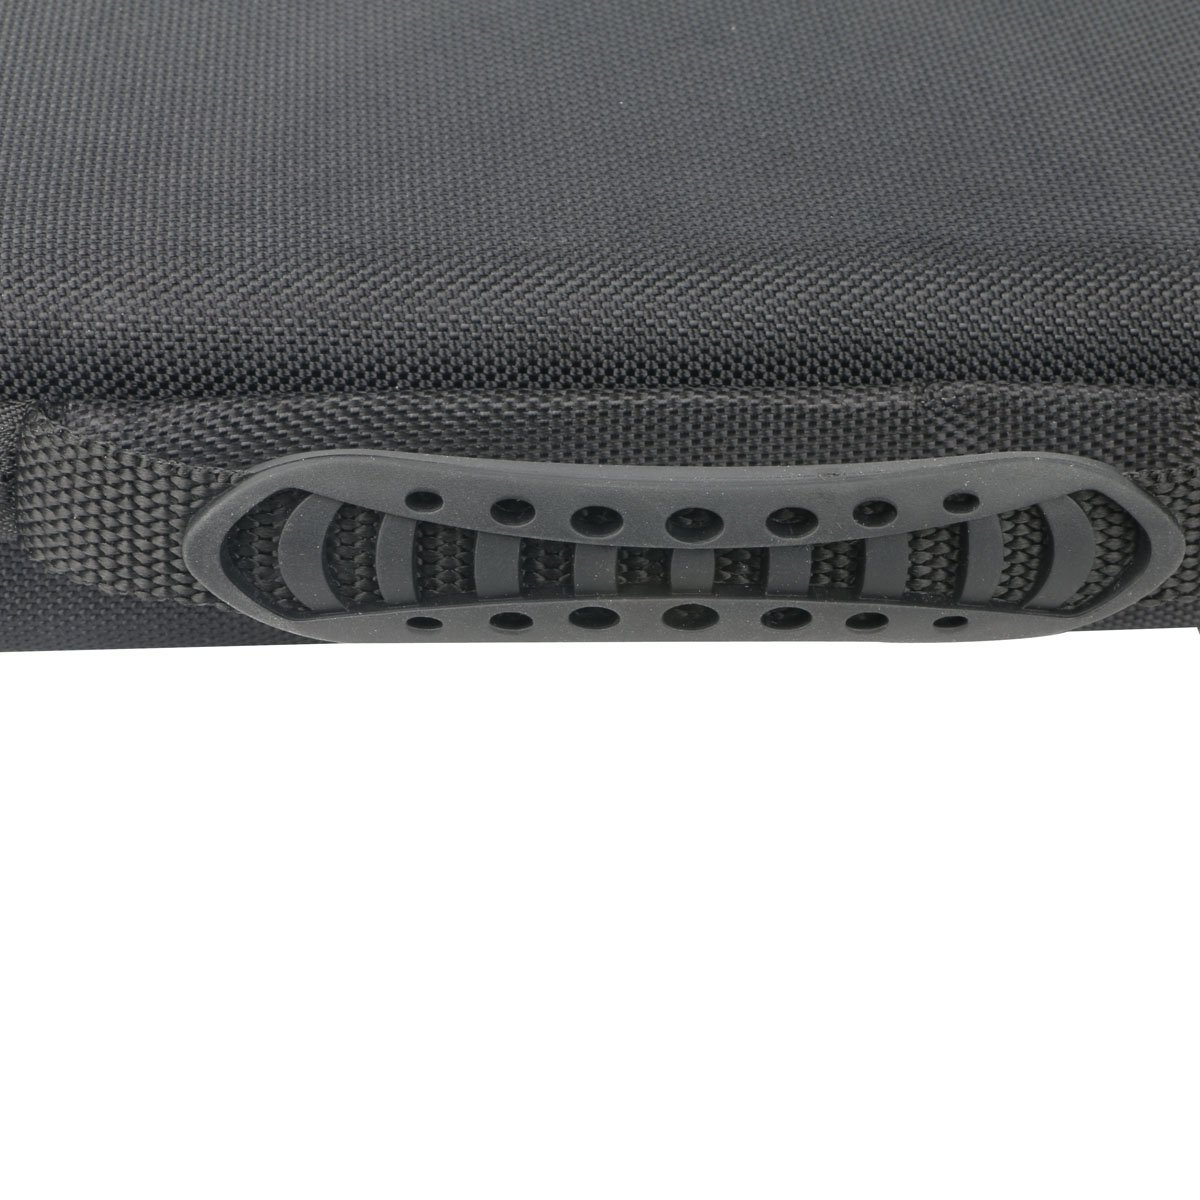 Khanka Hard Case for Akai Professional MPK Mini MKII 25-Key USB MIDI Controller by Khanka